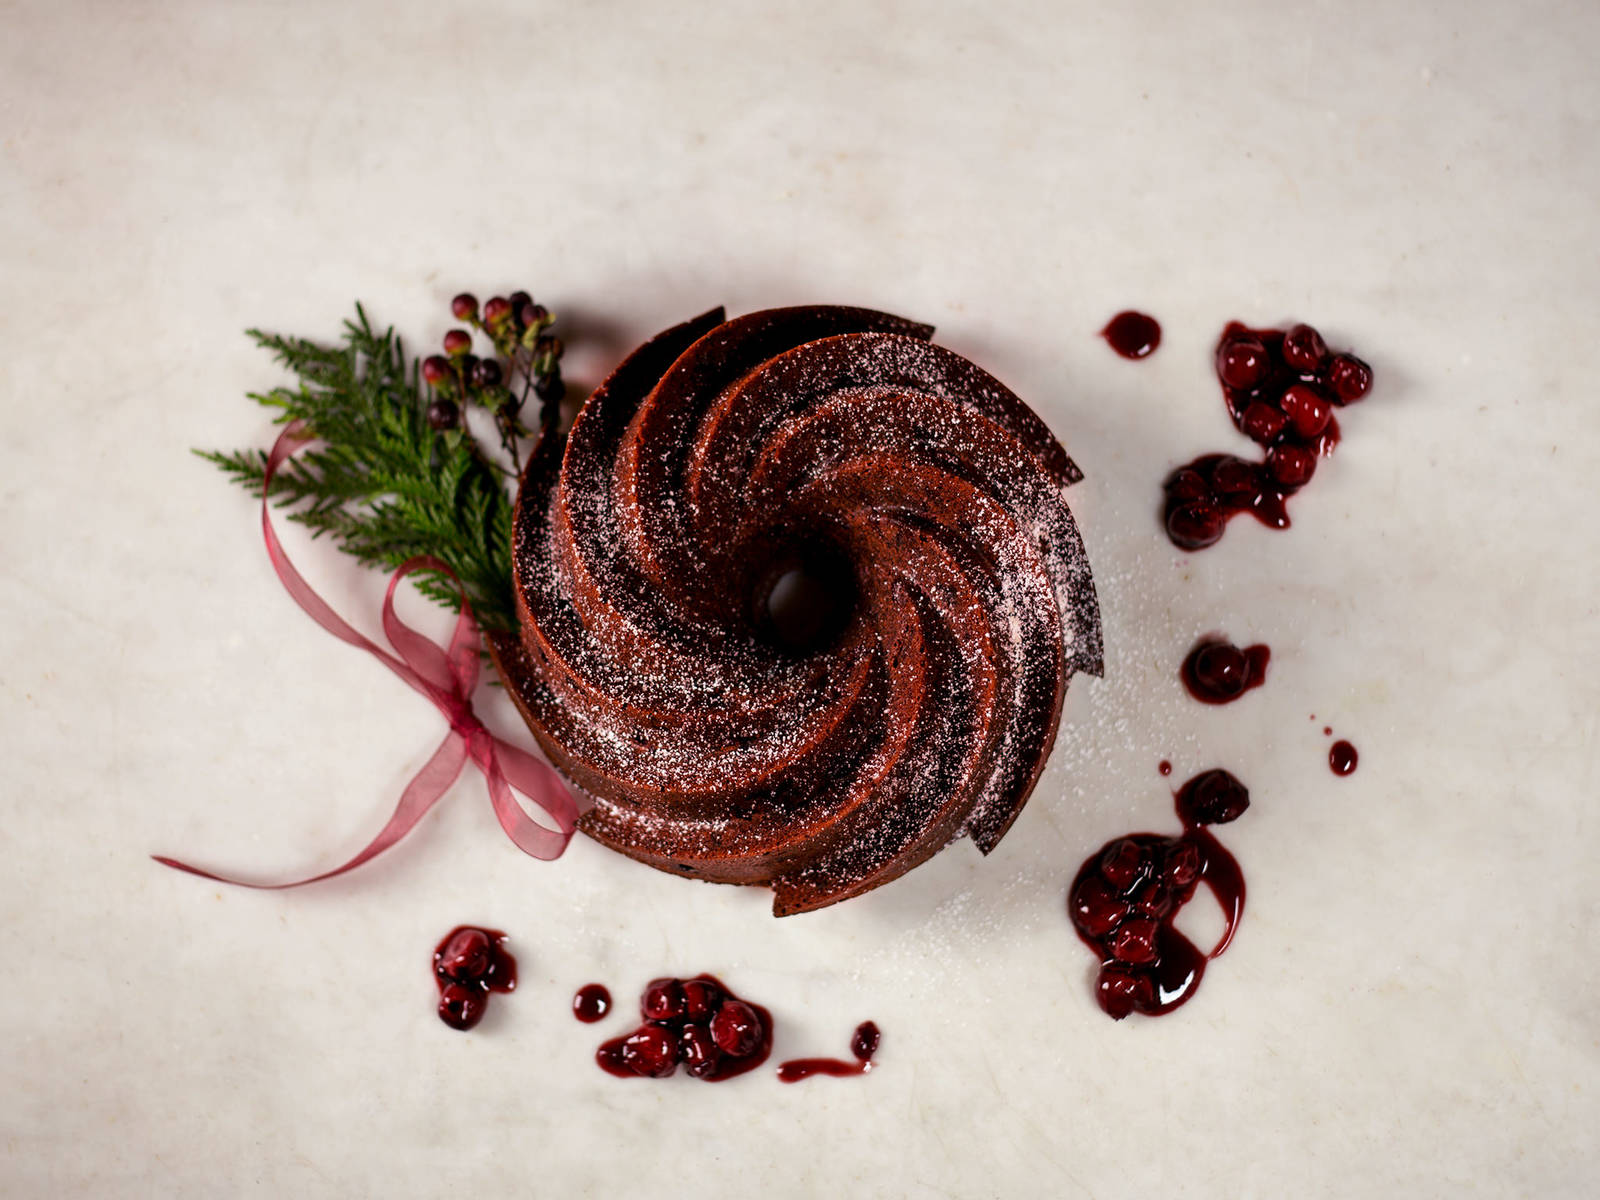 Cherry chocolate rum cake